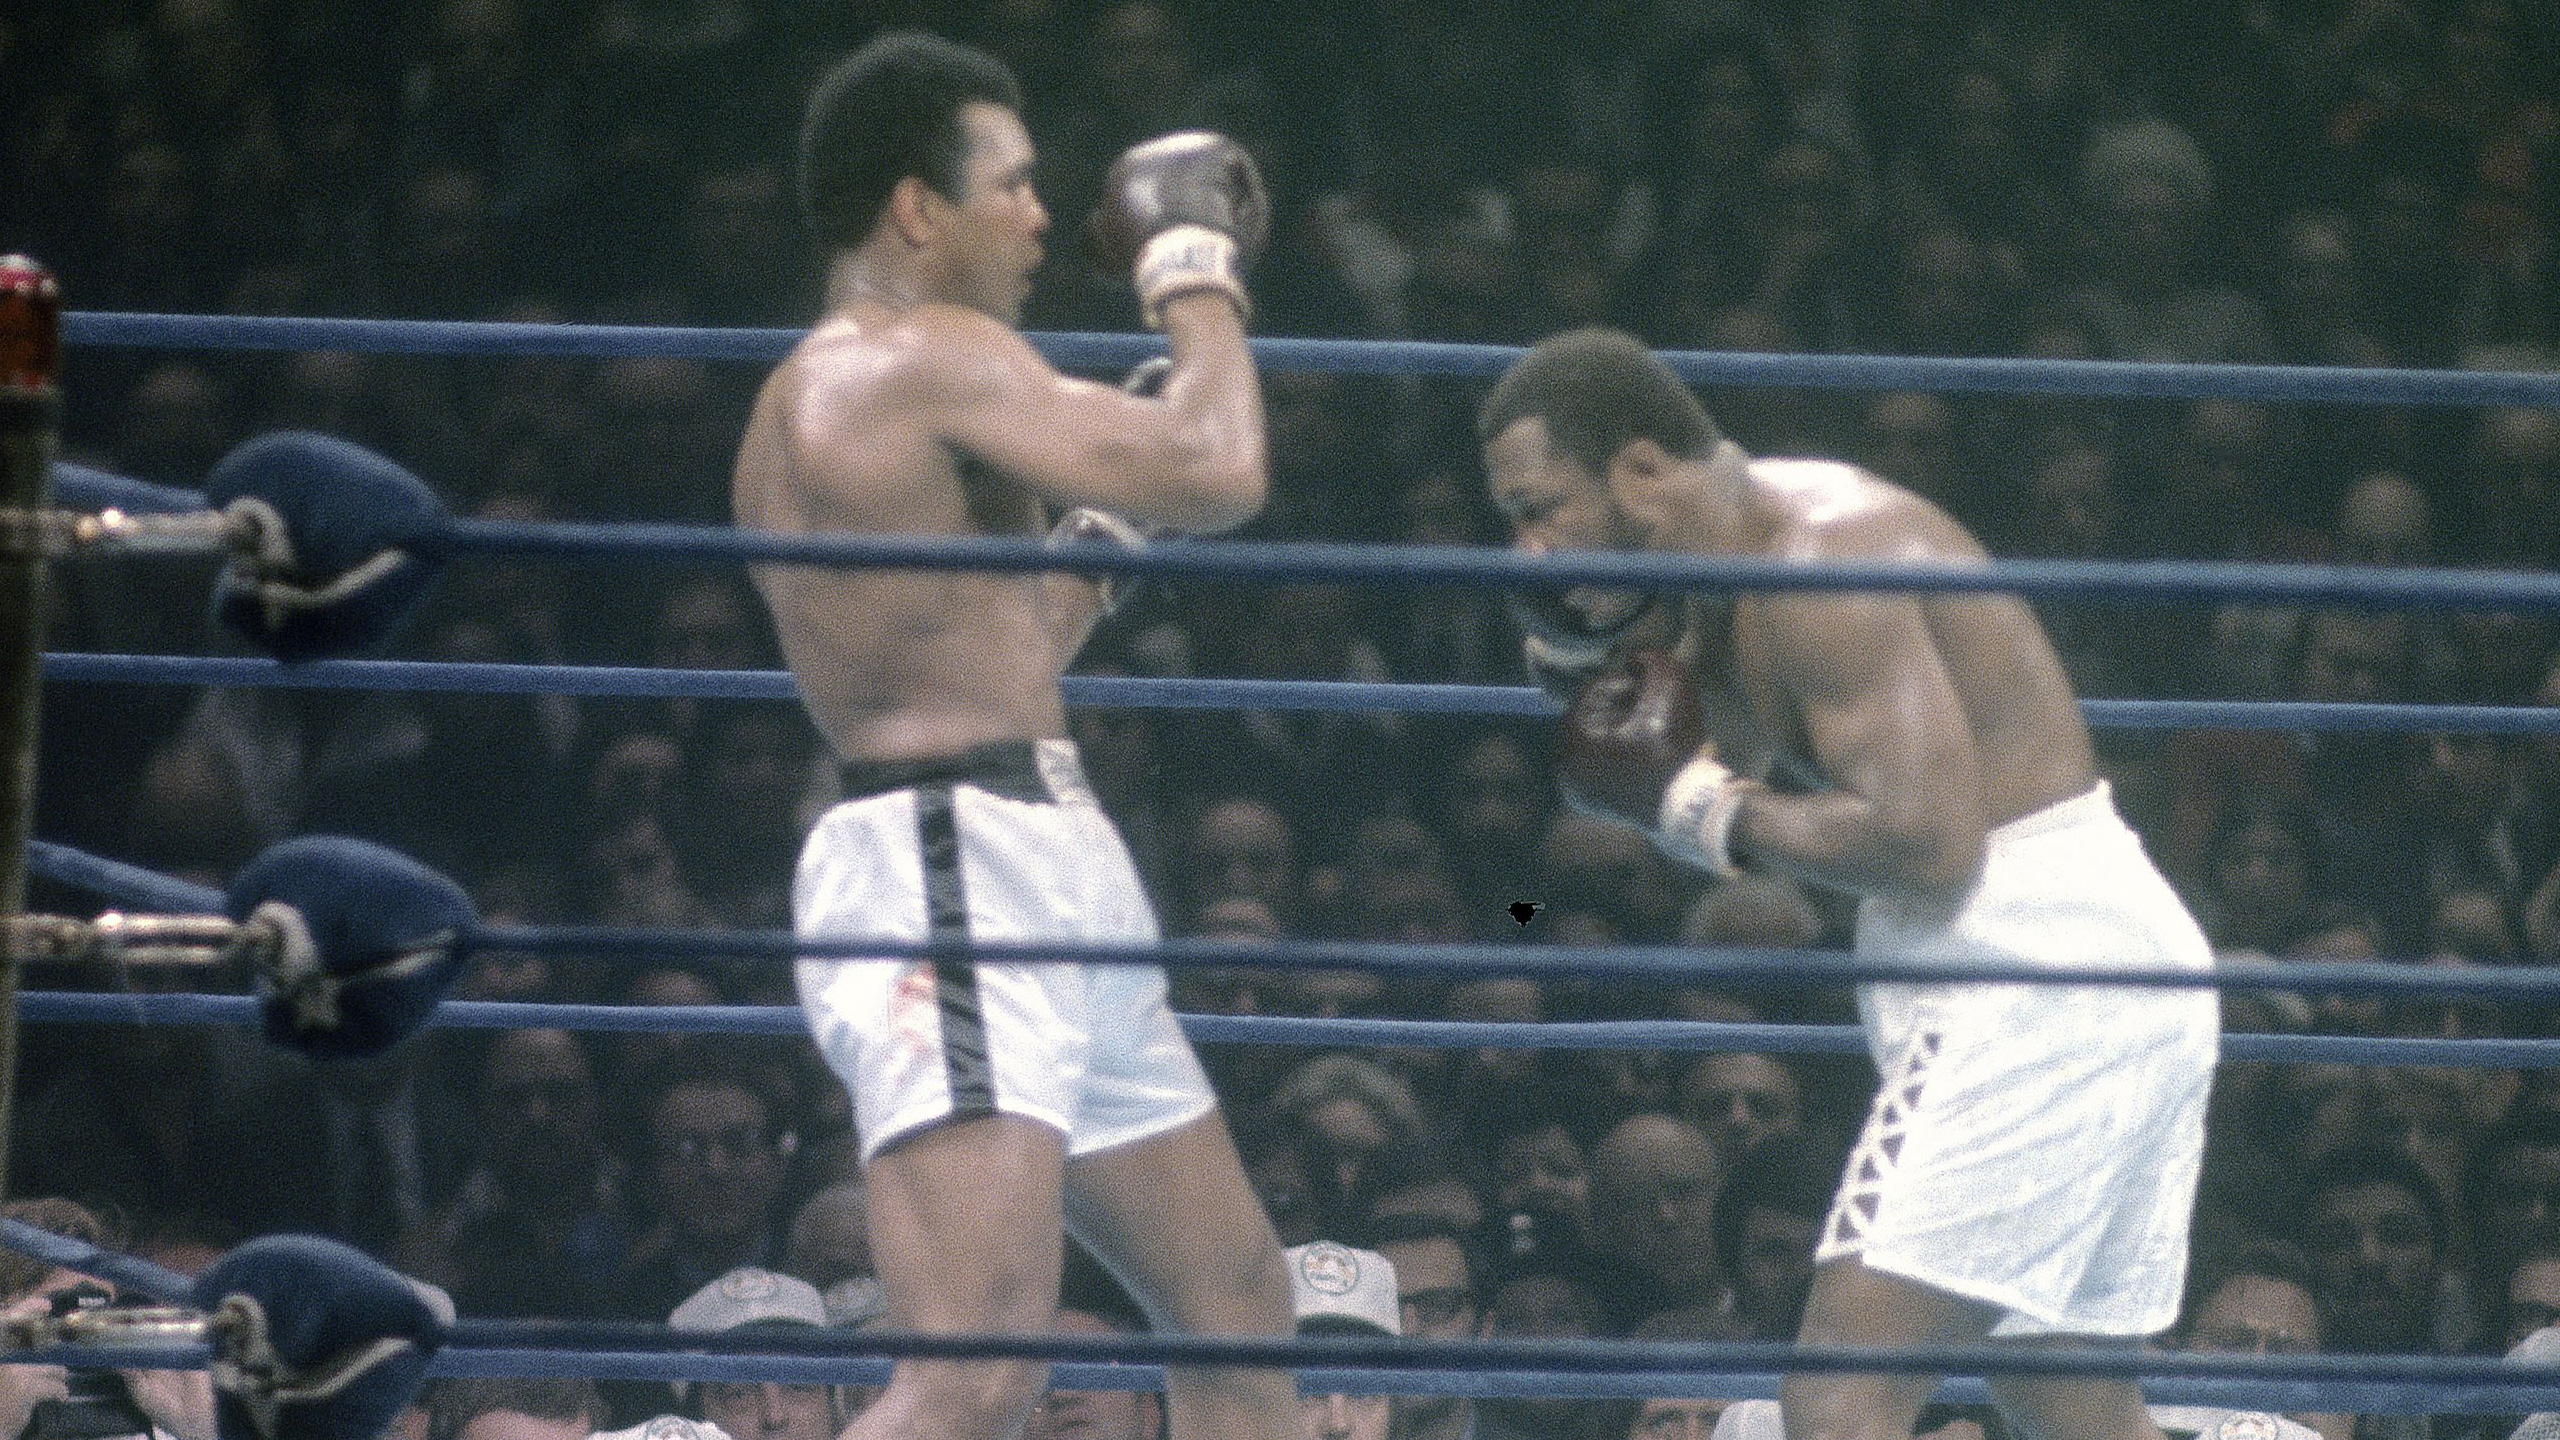 Muhammad Ali 2 vs. Joe Frazier 2 (re-air)